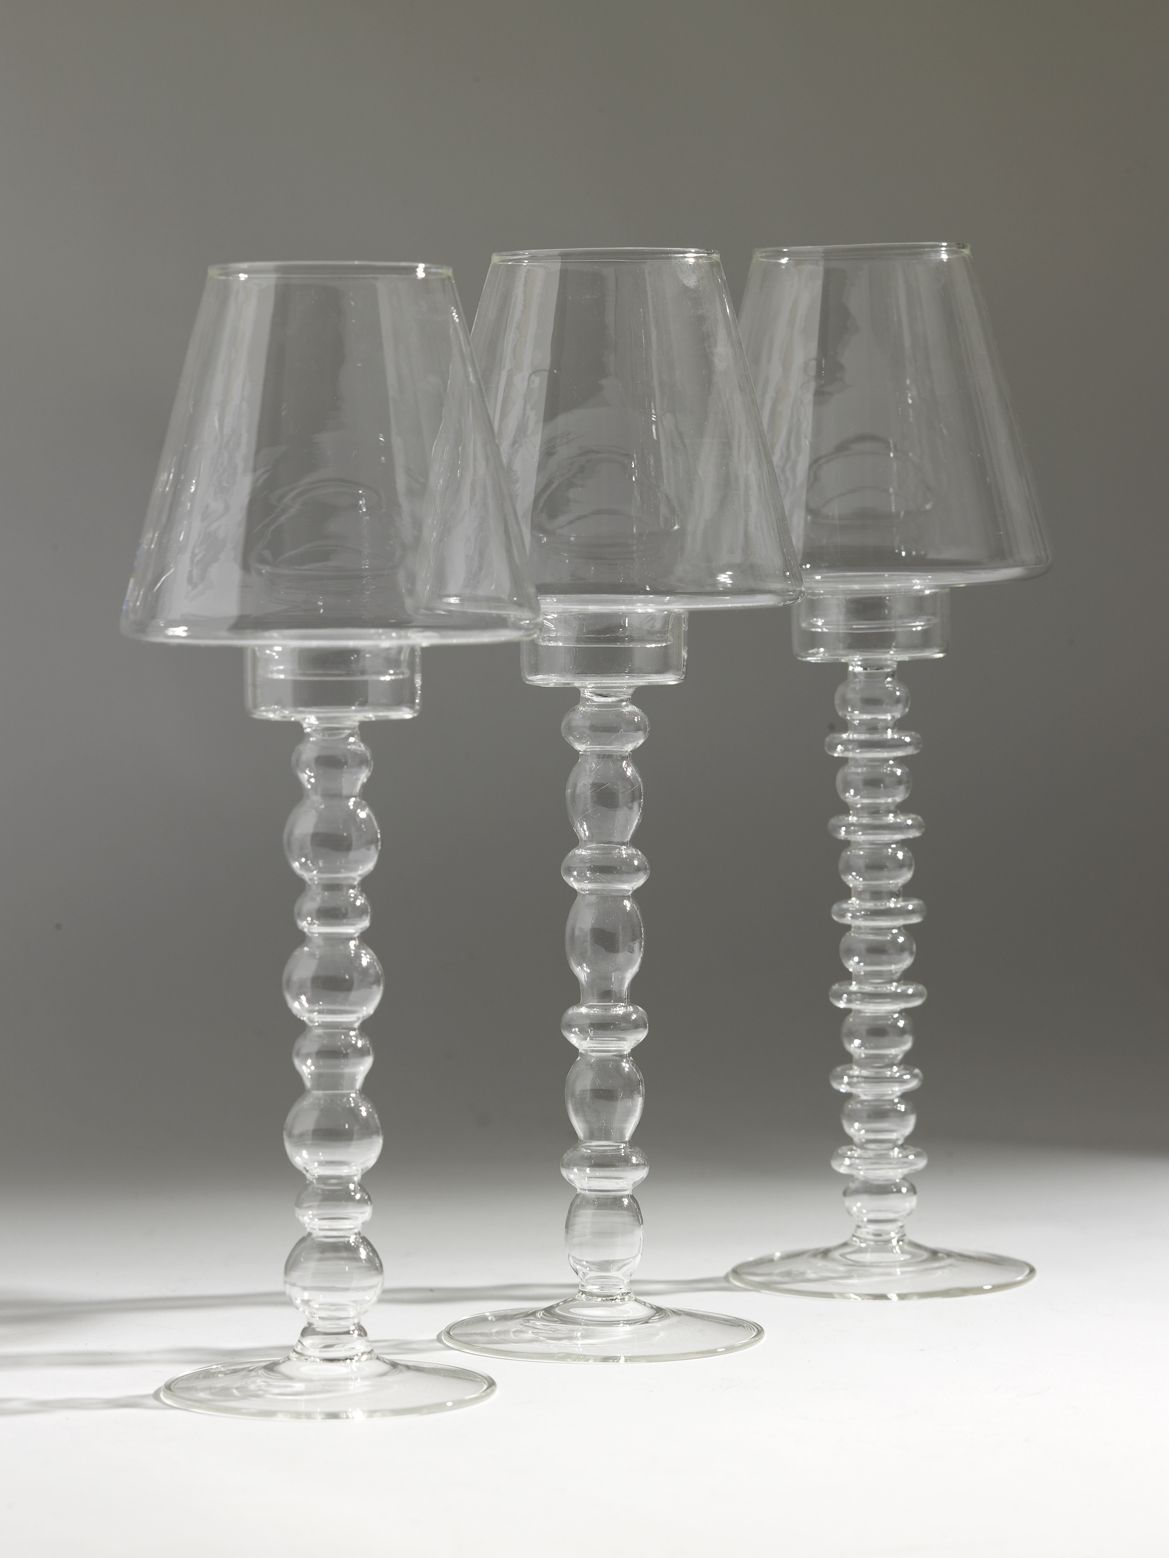 Hurricane lamp - Designed for Serax by Margriet Foolen